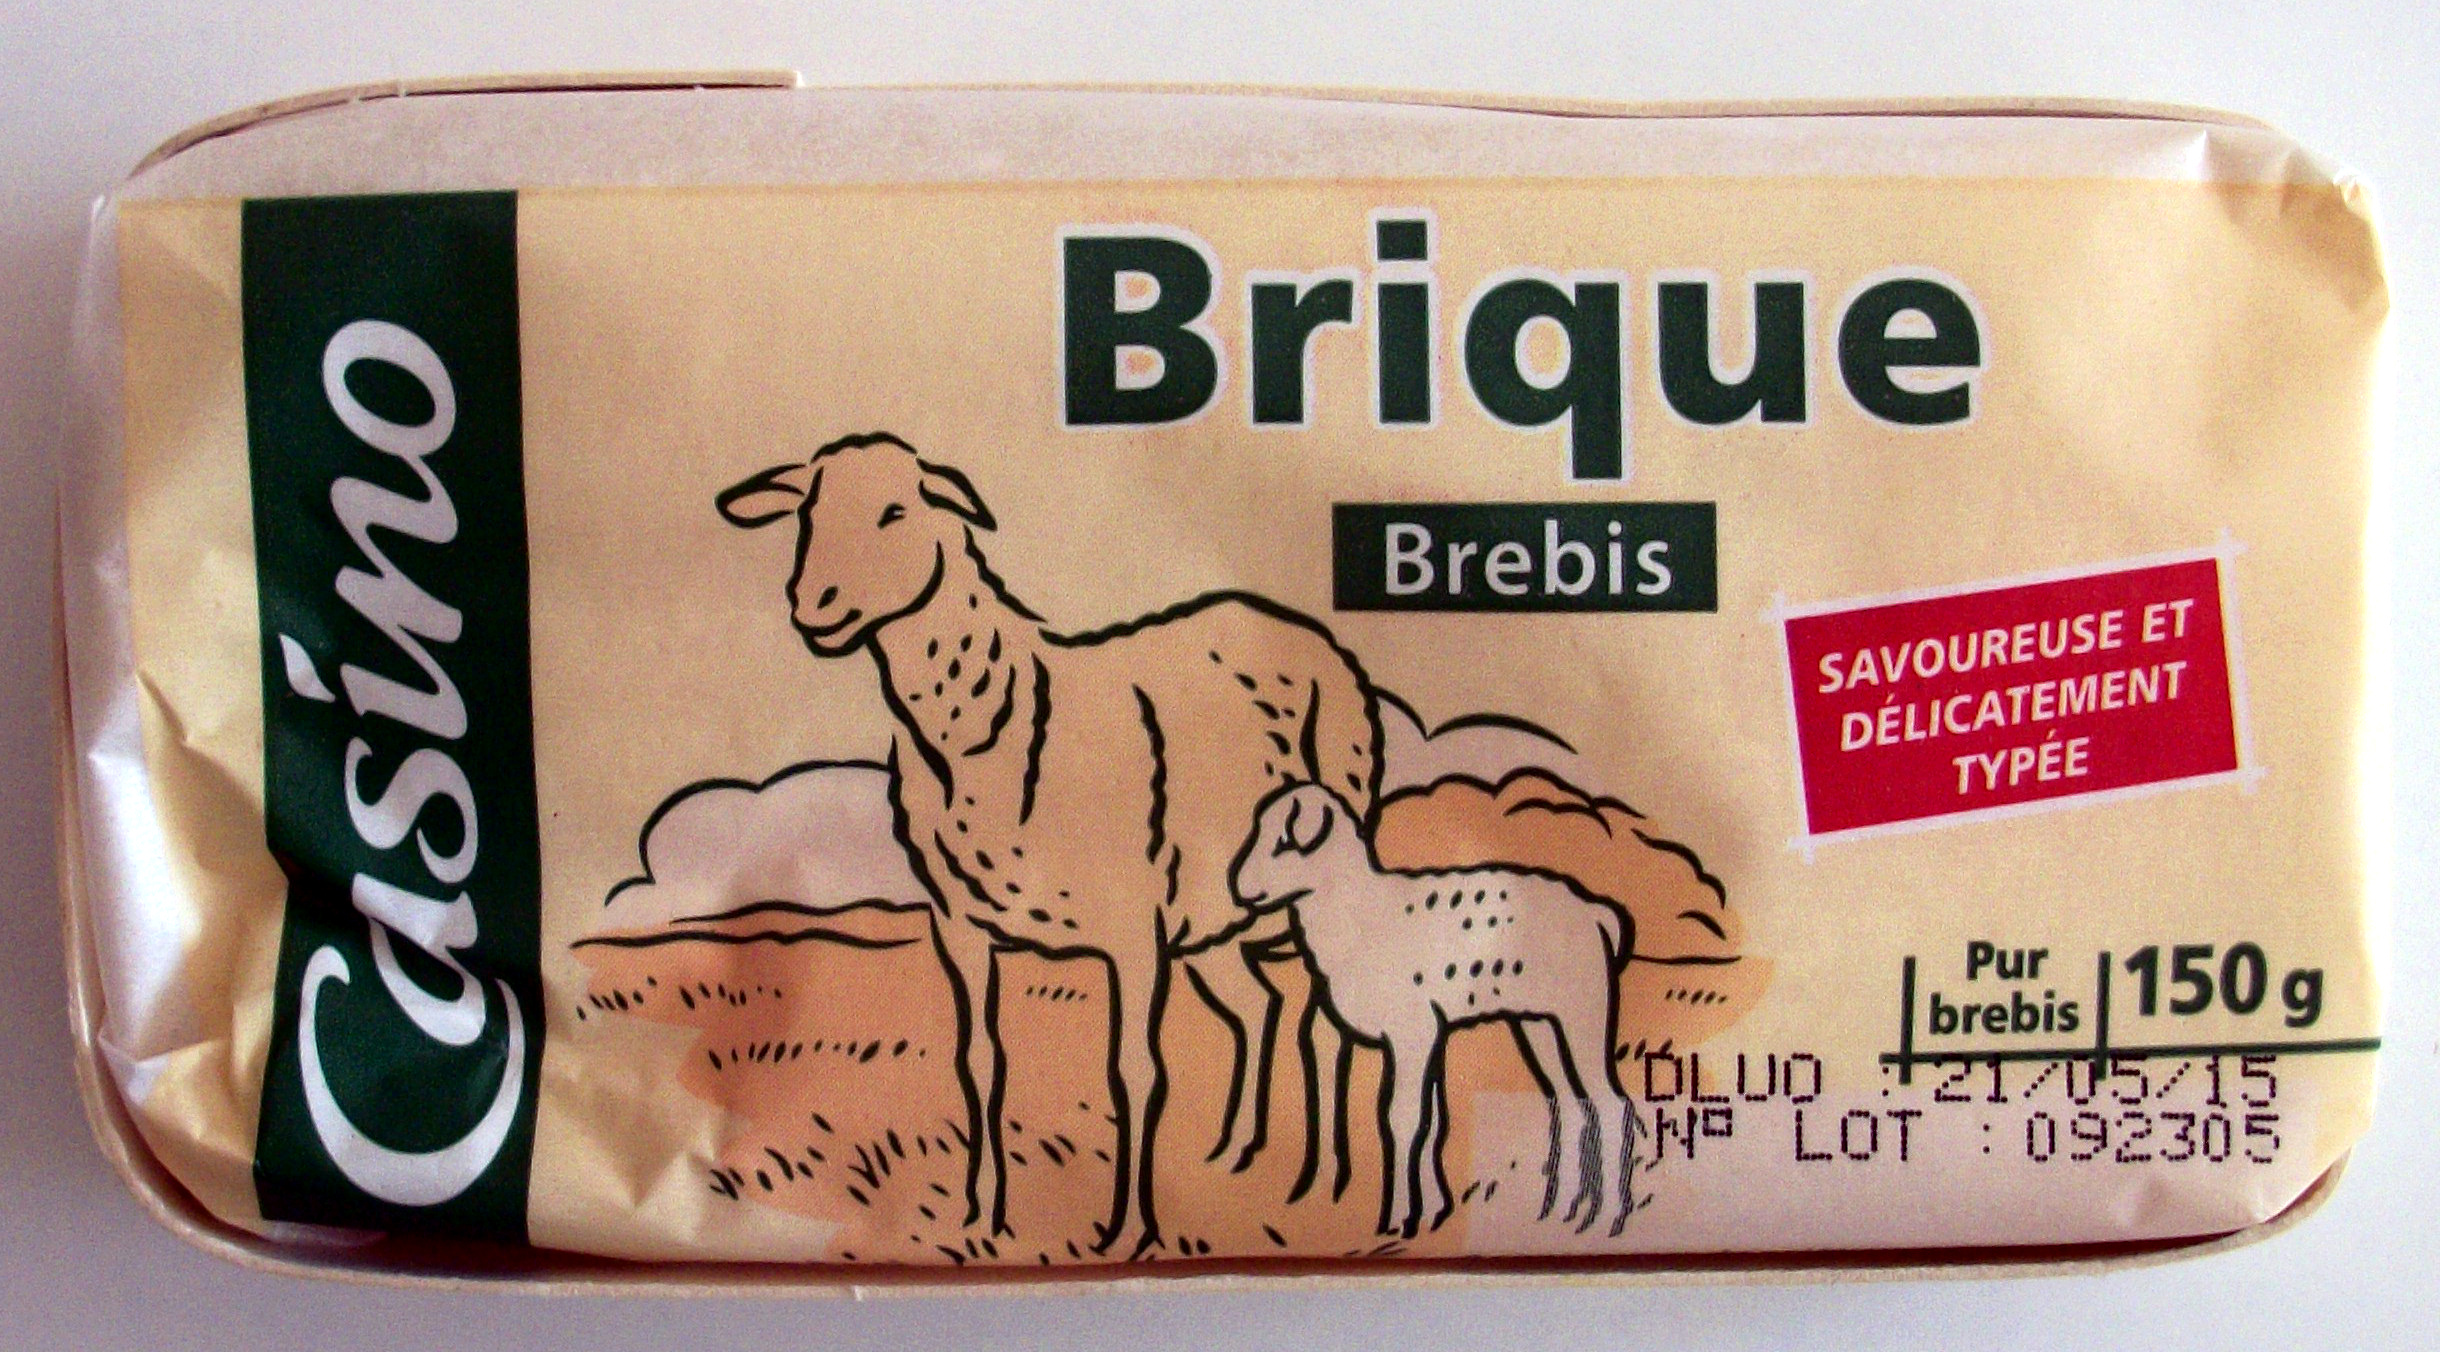 Brique brebis - Product - fr